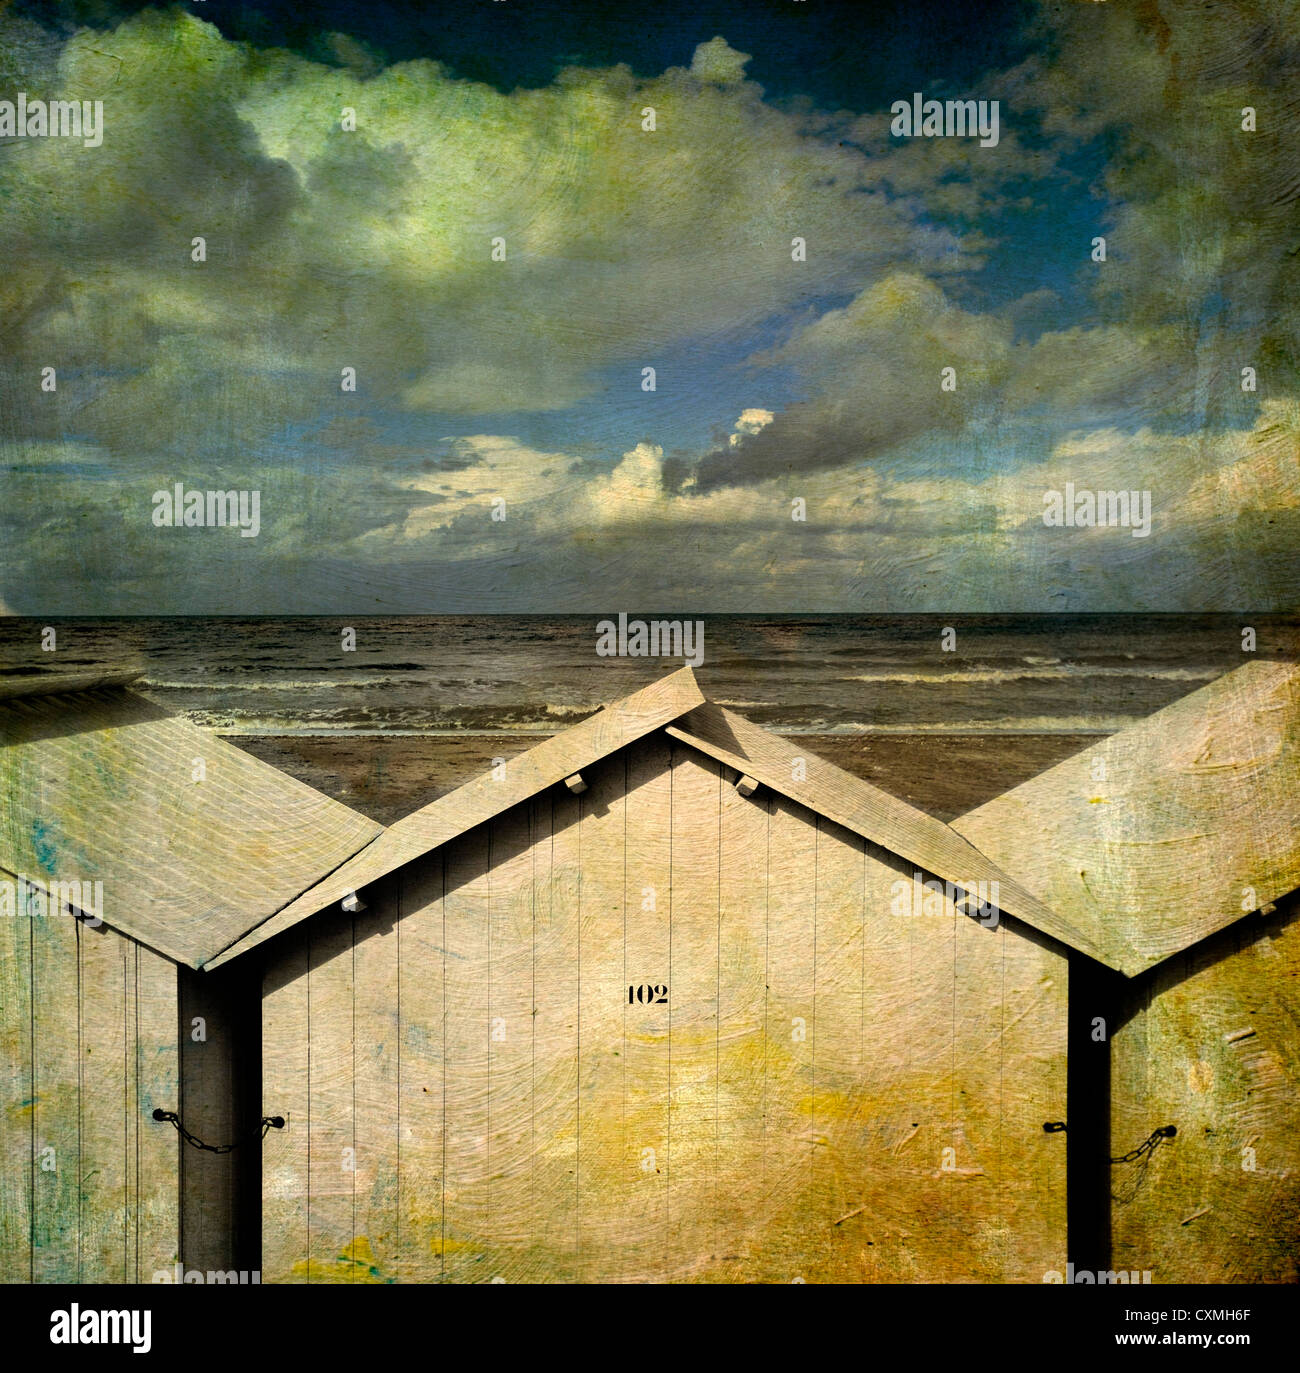 Beach huts under a stormy sky, vintage-look - textured art effect image Stock Photo